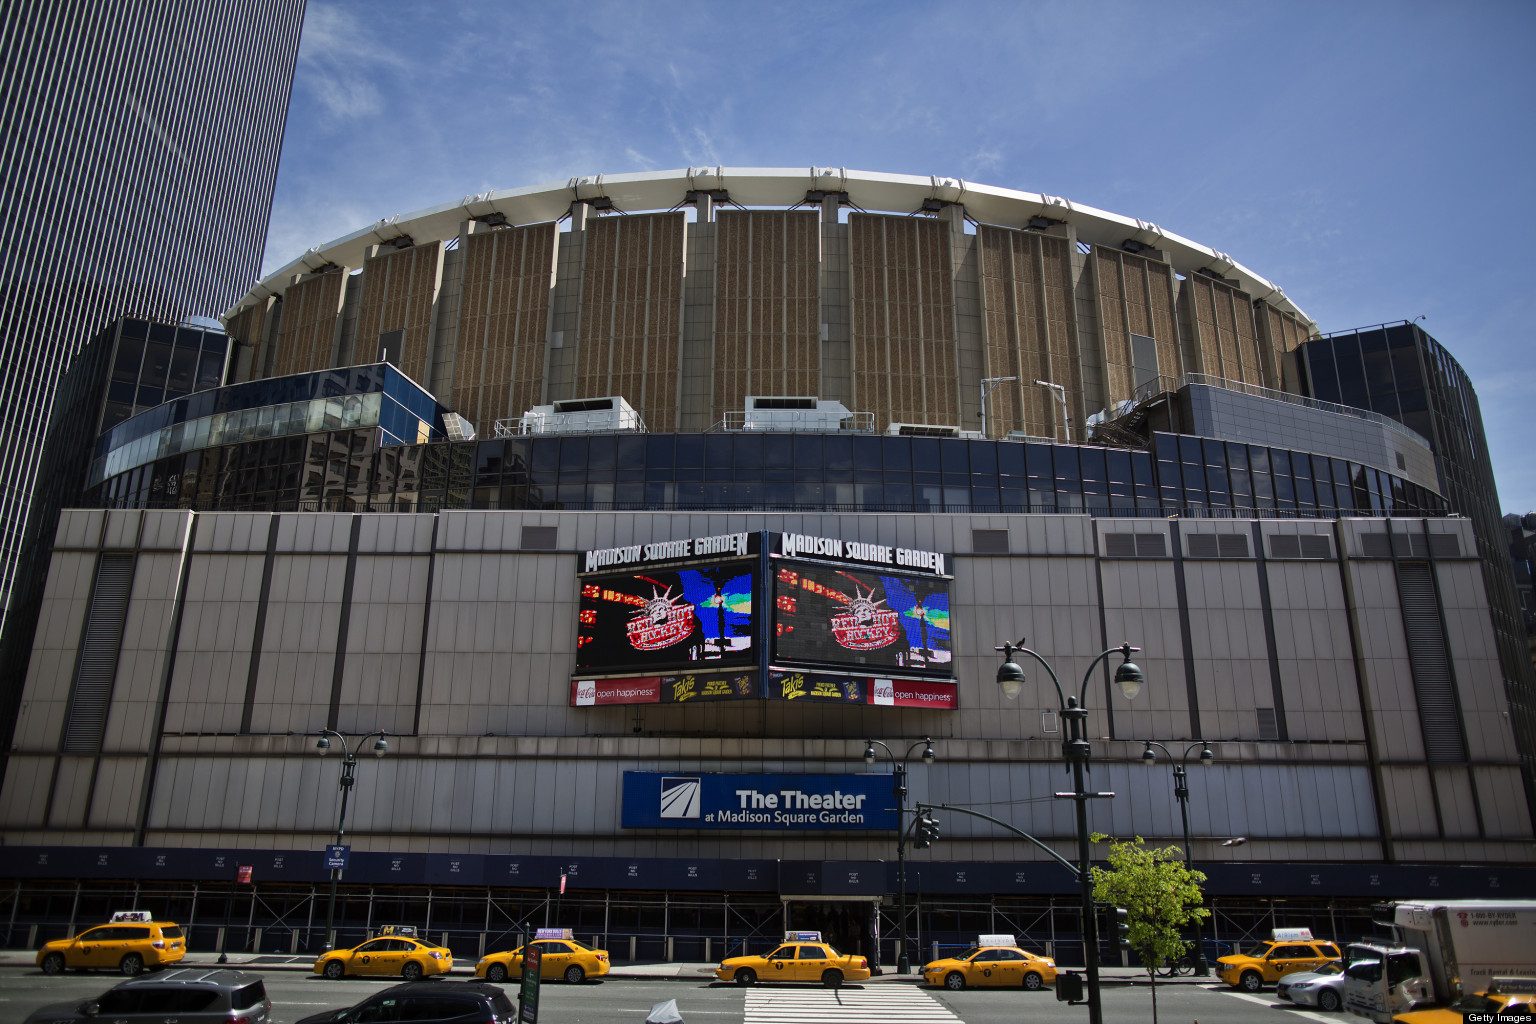 Madison square garden to move permit limit of 15 years may prompt owners to scout new location for Address of madison square garden